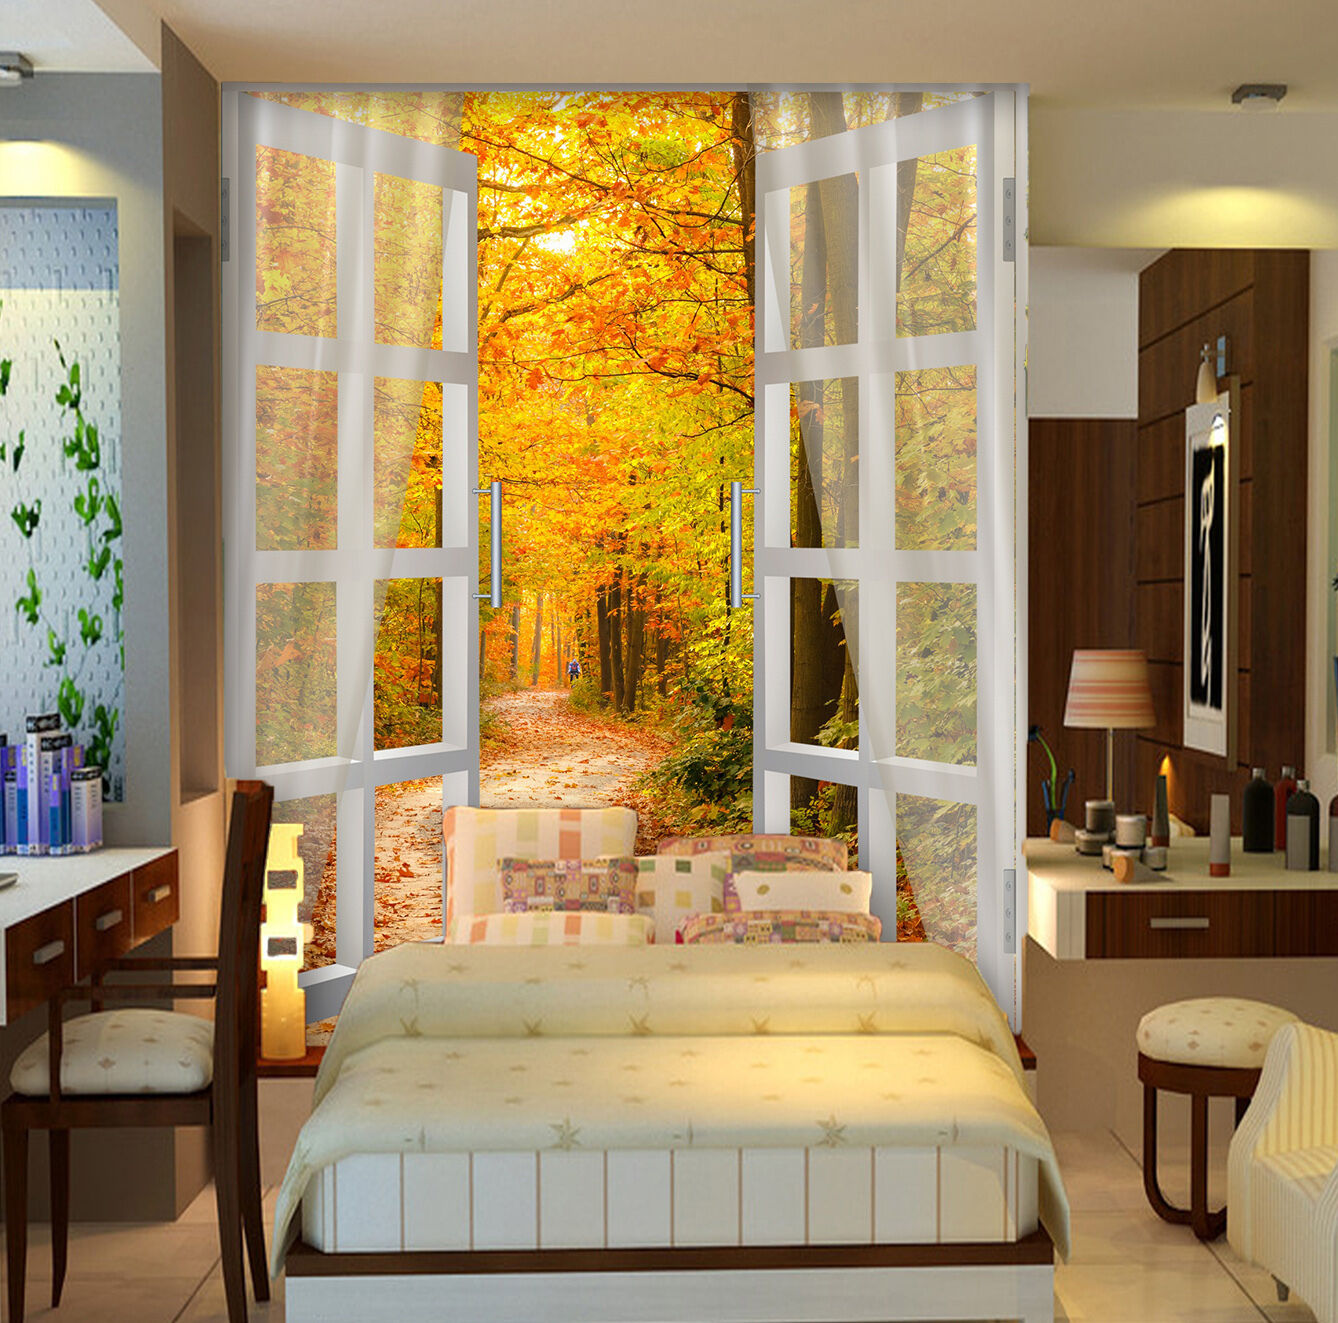 3D Door colorful Forest 3399 Wallpaper Decal Decor Home Kids Nursery Mural Home